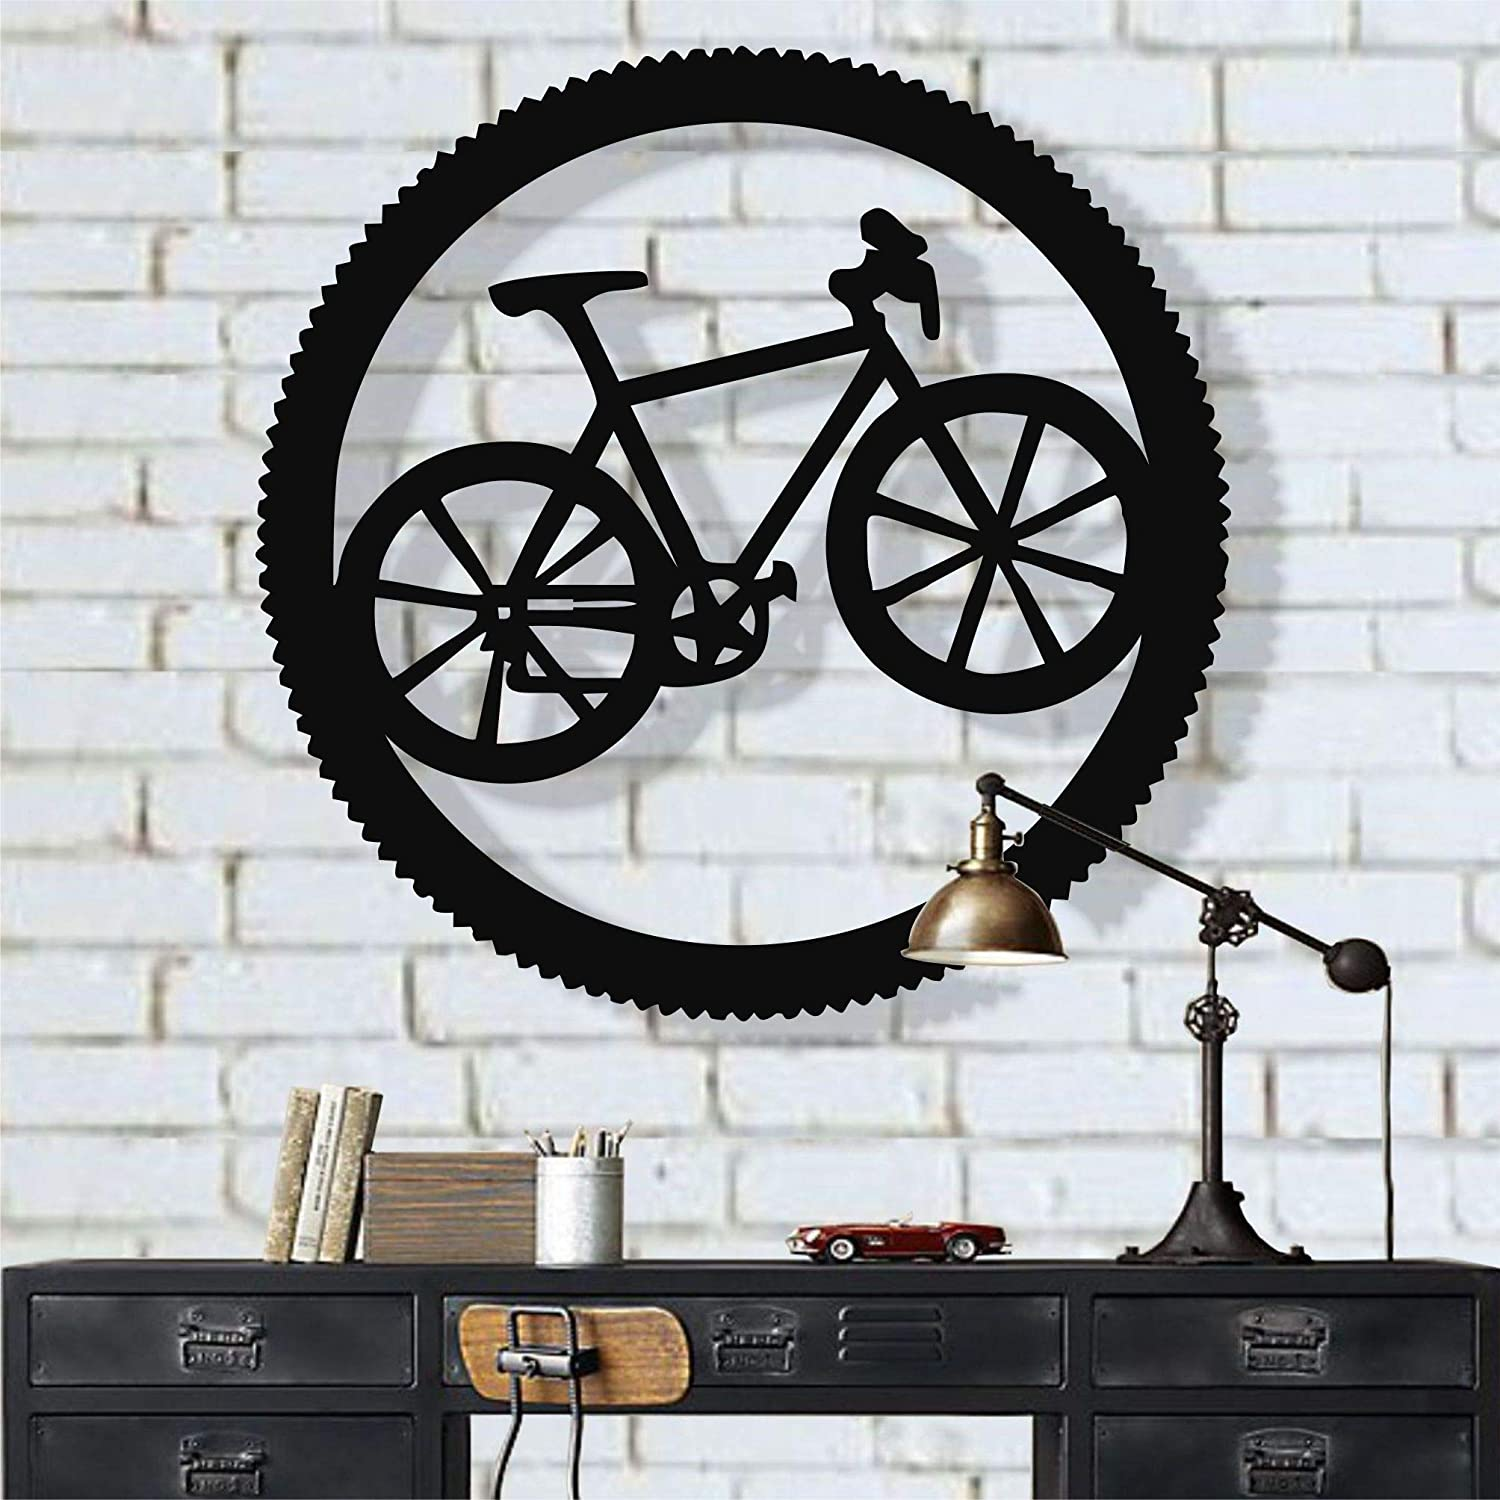 "Metal Bike Wall Art, Cyclist Gift, Biker Art, Bicycle Wall Art, Metal Wall Decor, Home Office Decoration, Bedroom Living Room Decor, Housewarming Gift (18""W x 18""H / 45x45 cm)"